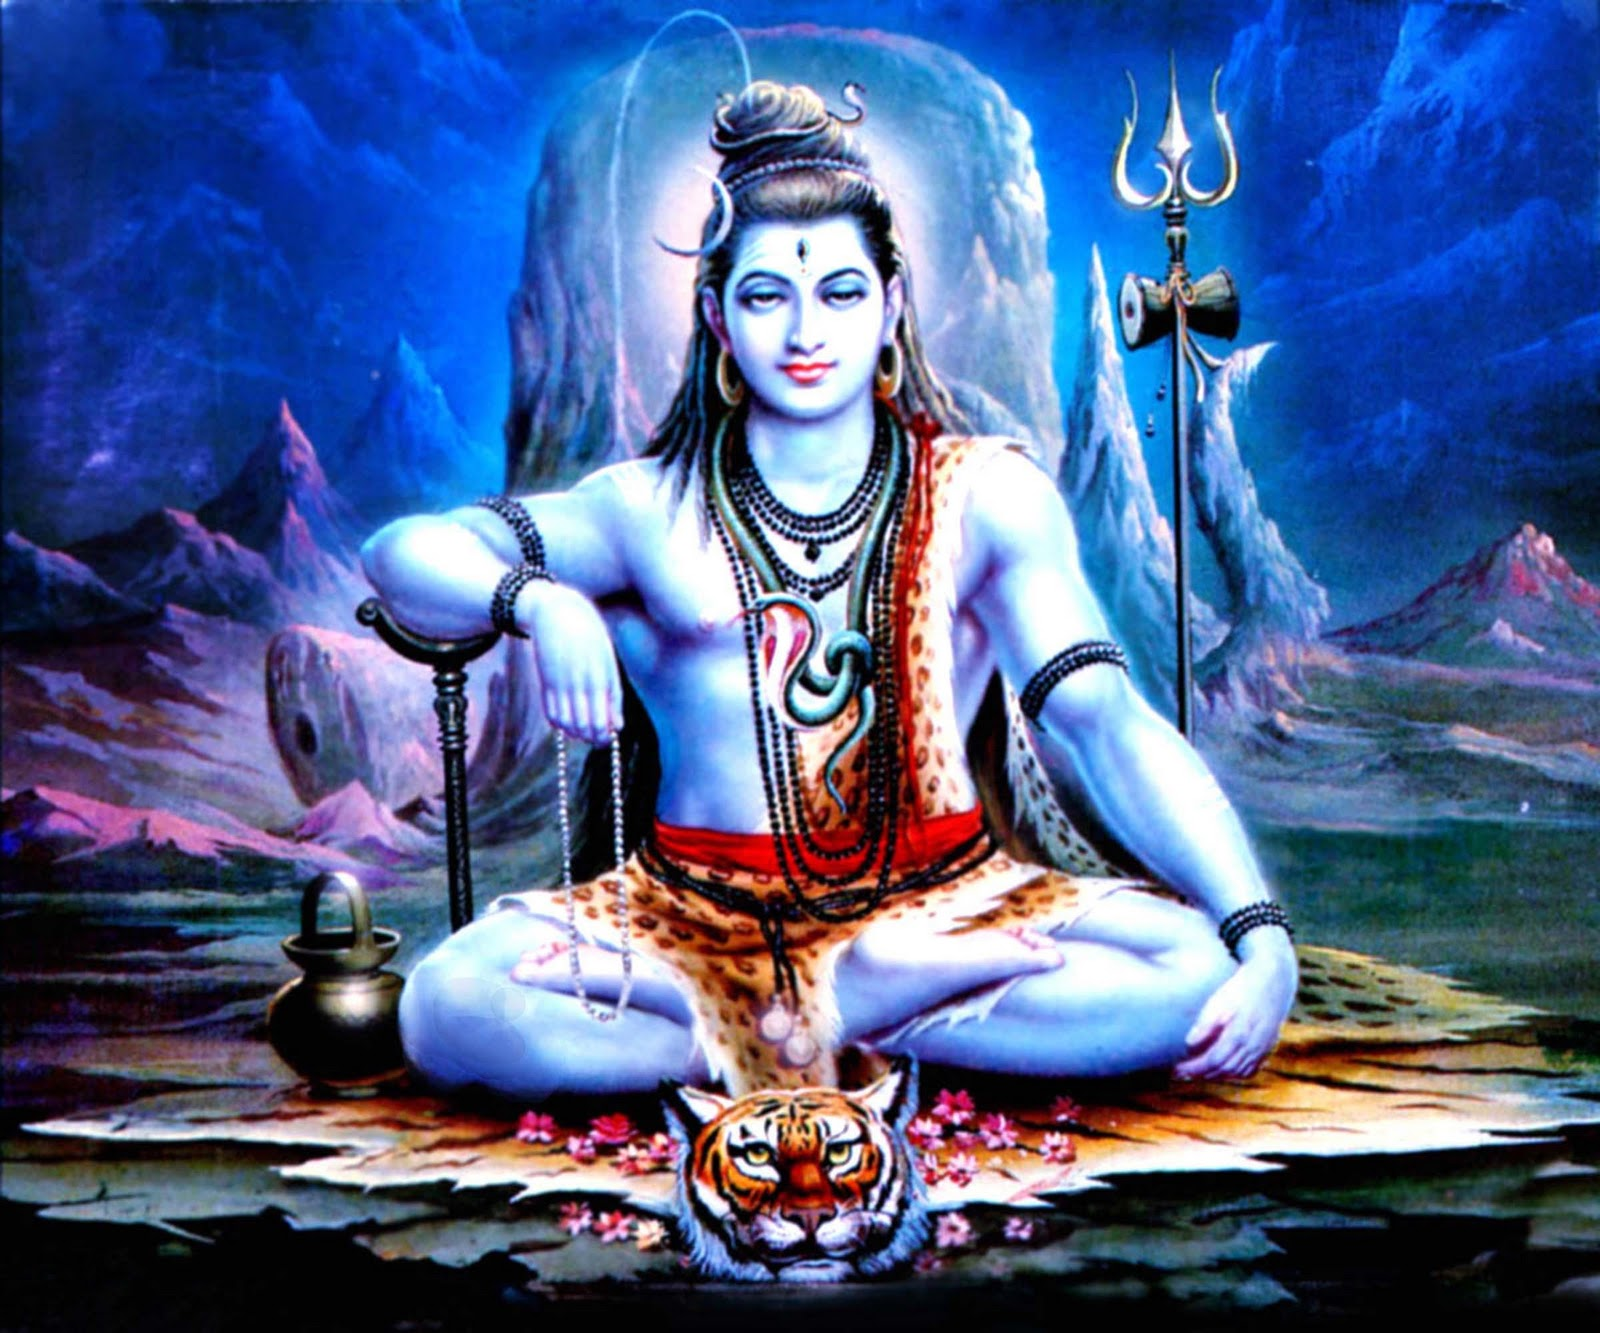 Lord Shiva Wallpaper   Oriya Entertainment News 1600x1333